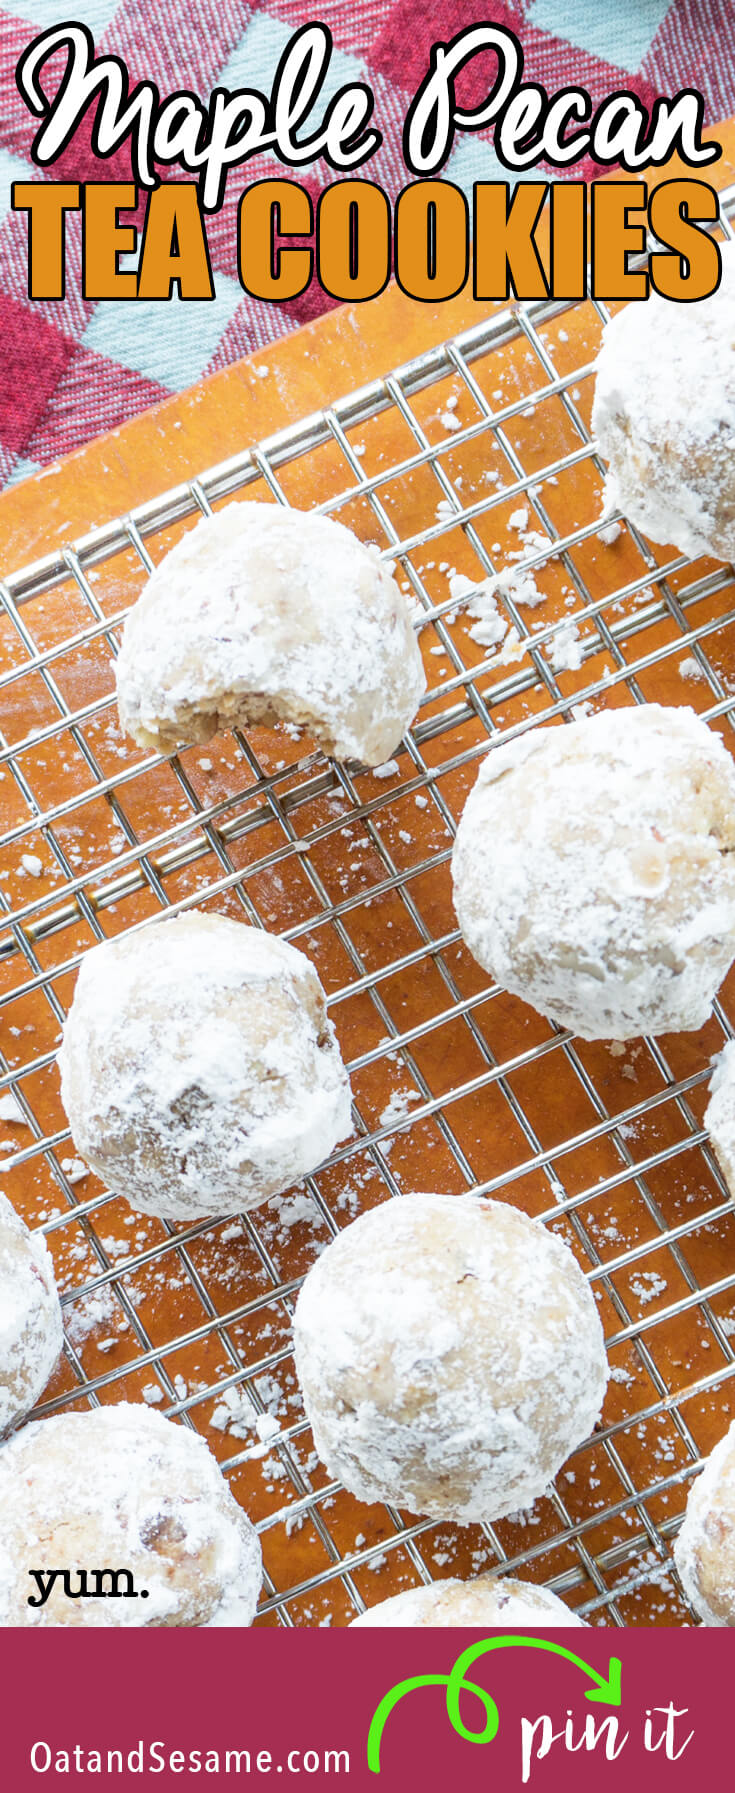 Maple Pecan Tea Cookies are infused with maple extract and loads of chopped pecans. Crescent shaped or in ball form, these cookies have just a touch of sweetnesswith a light + buttery texture just like a traditional tea cookie should be!   #COOKIES   #BAKING   #PECAN   #HOLIDAY   #Recipe at OatandSesame.com